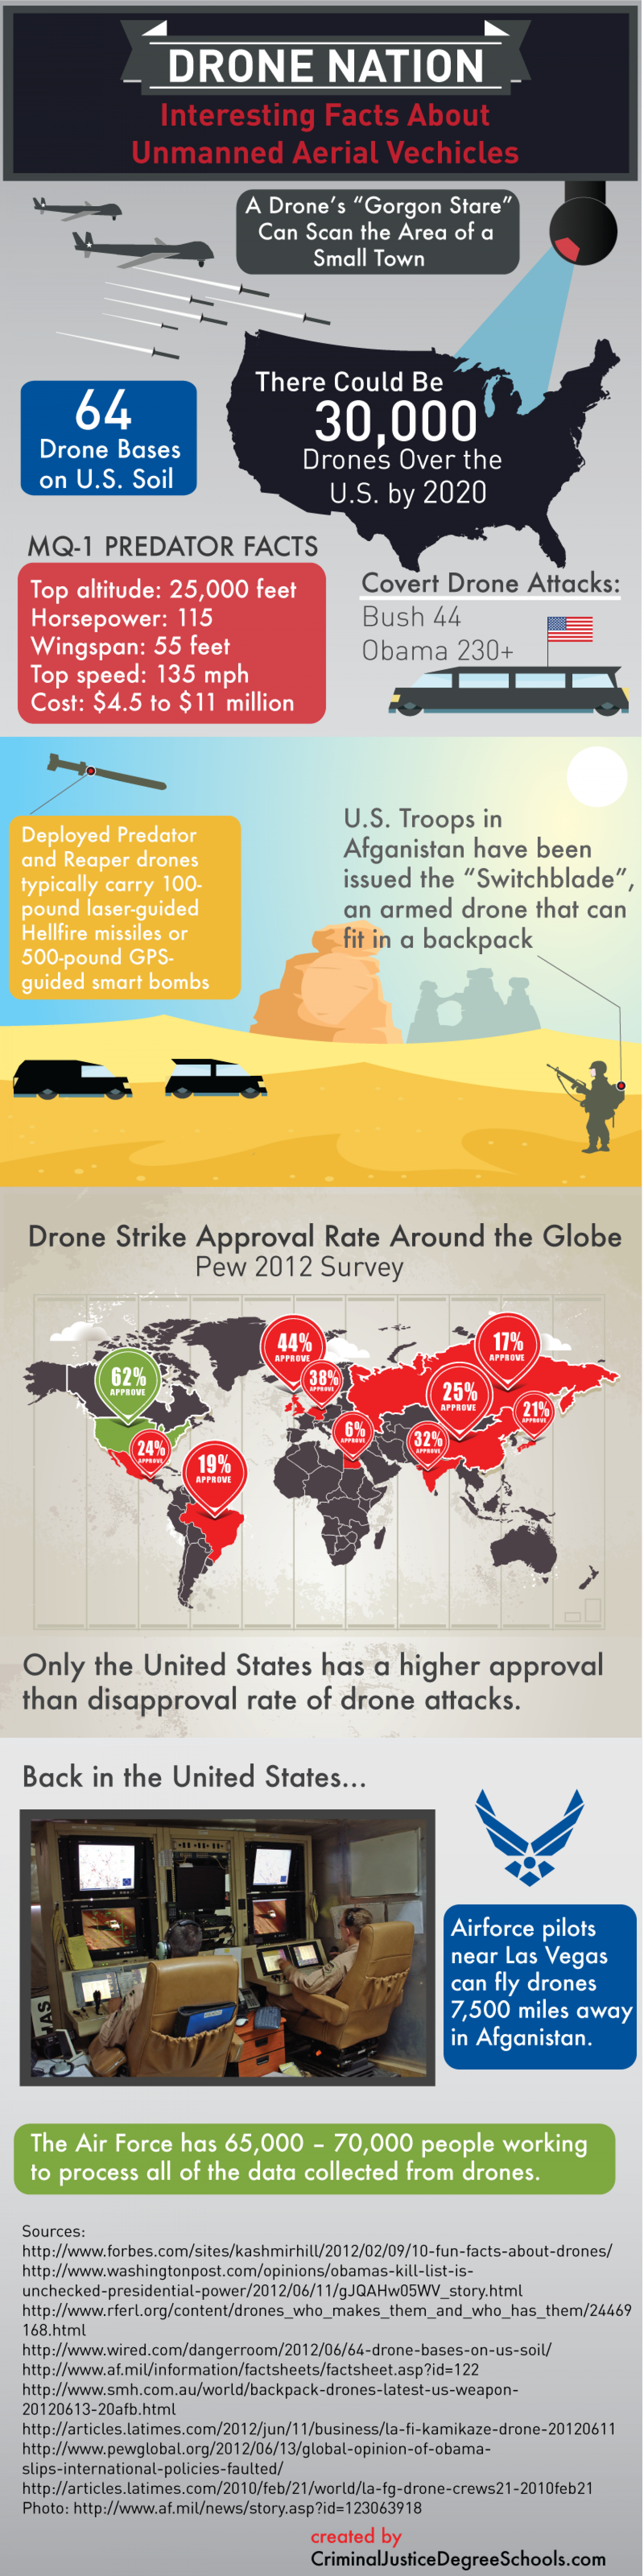 Drone Nation: Interesting Facts About Unmanned Aerial Vehicles Infographic